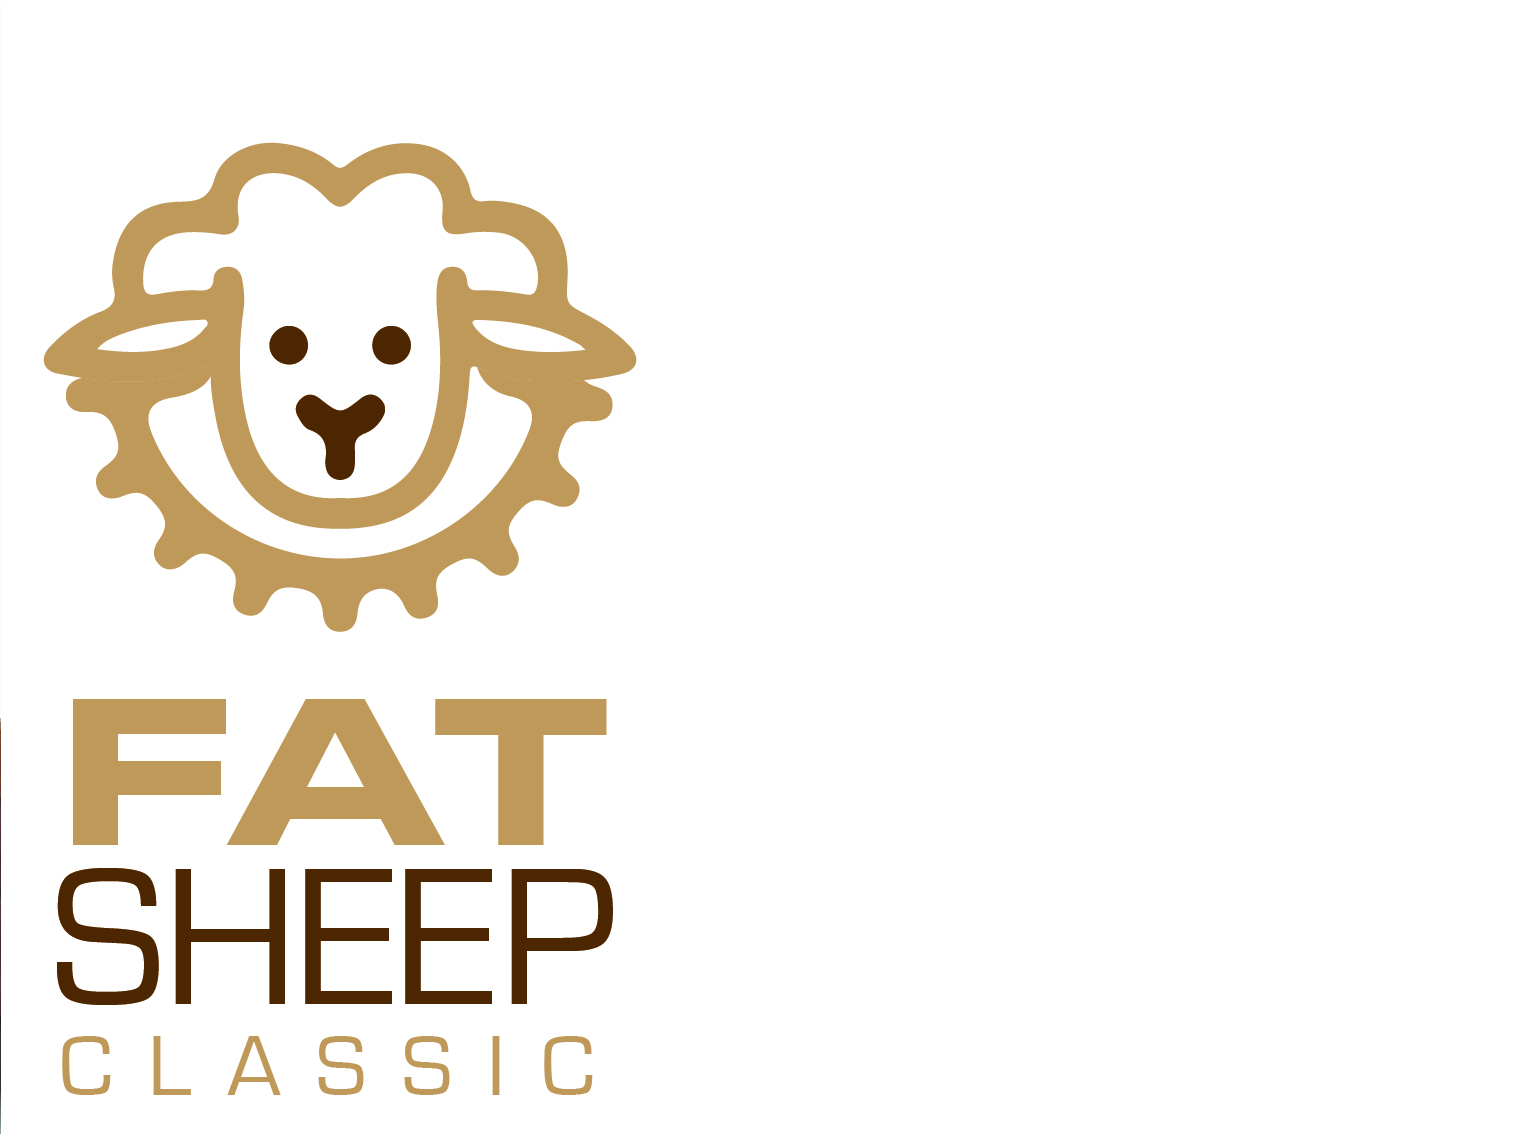 FAT SHEEP CLASSIC